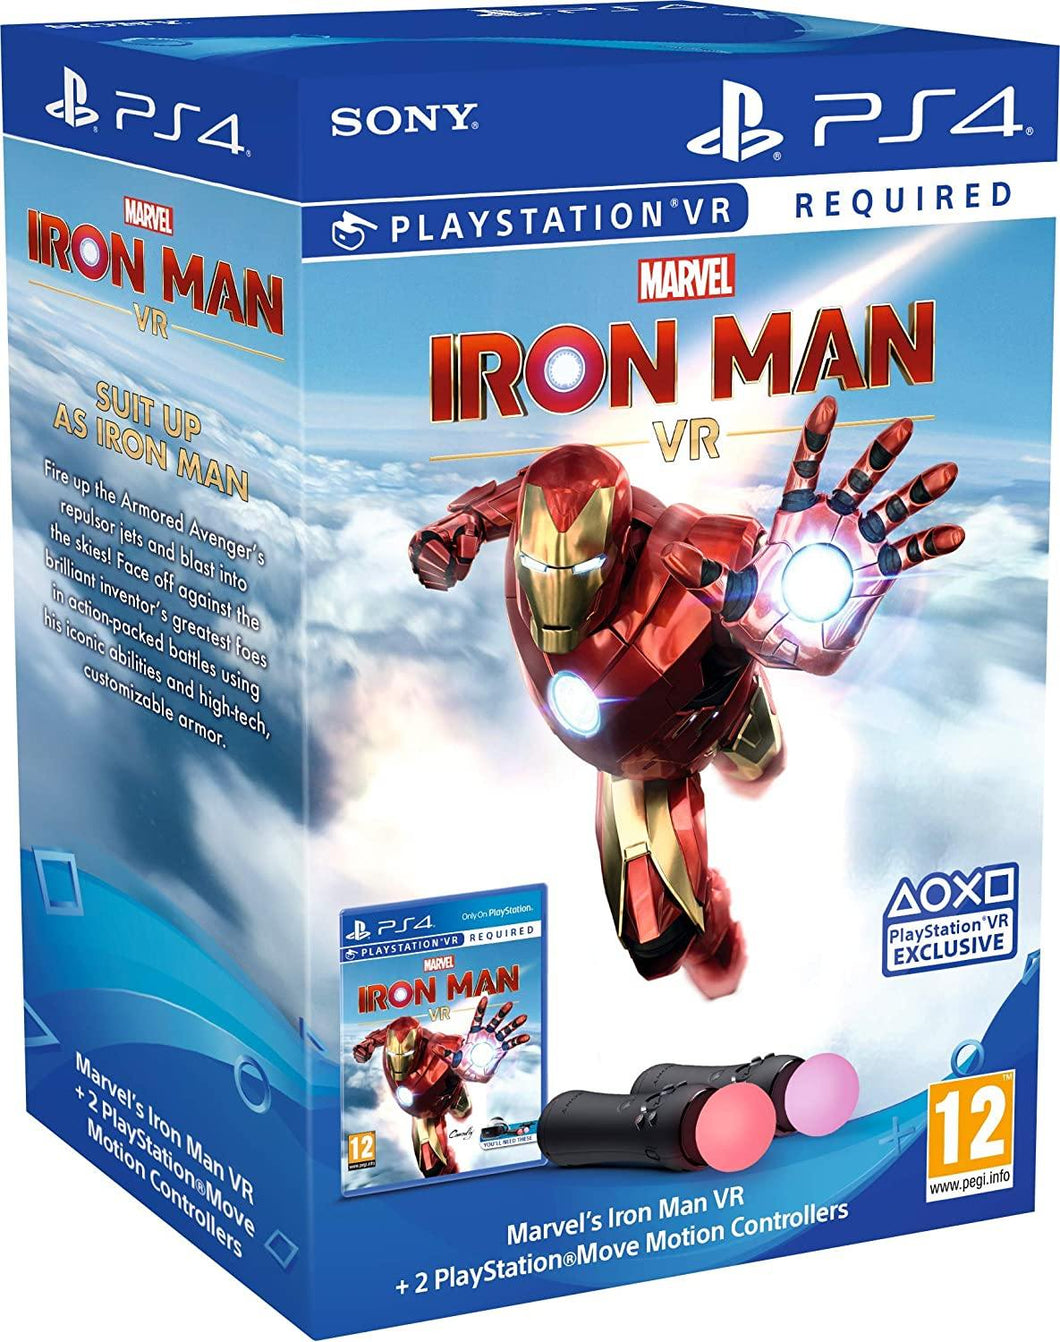 Marvel's Iron Man VR PlayStation Move Controller Bundle